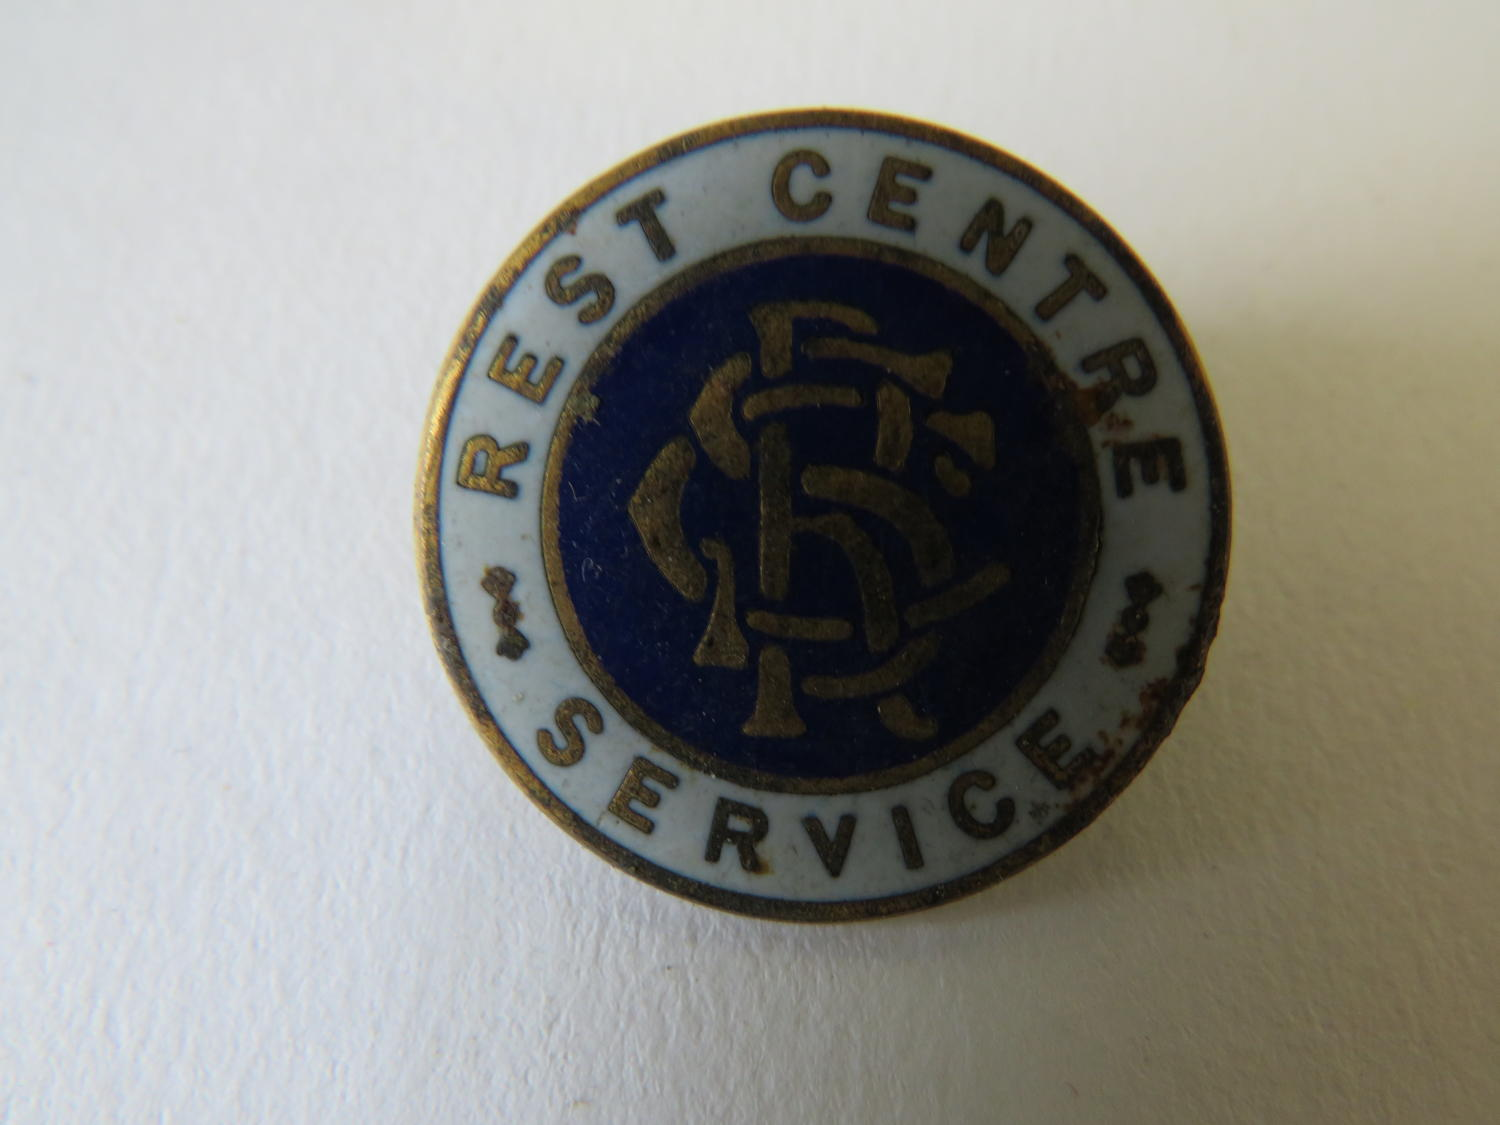 WW 2 Rest Centre Service Lapel Badge